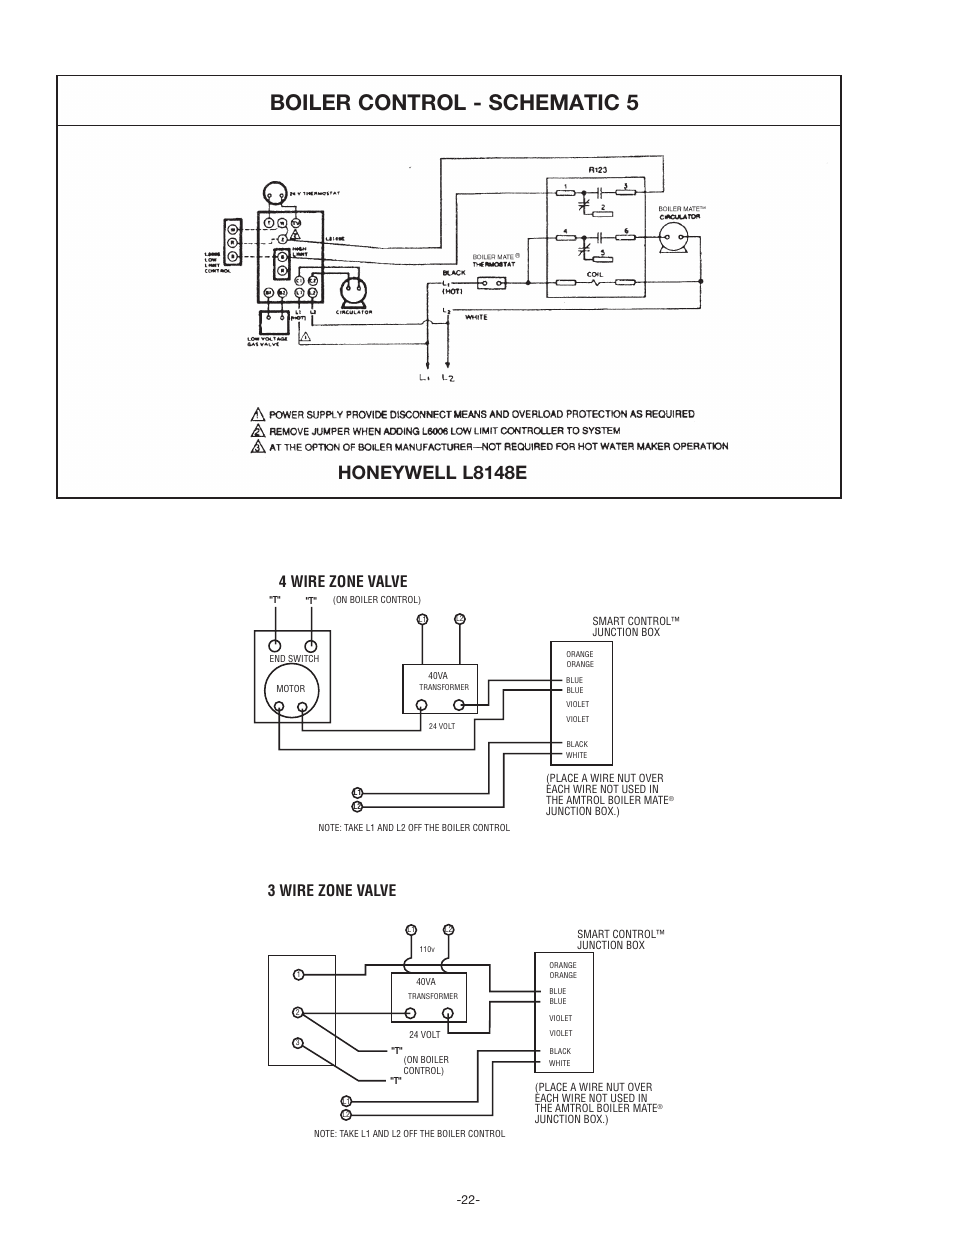 honeywell zone control valve wiring diagram 40004850 001 boiler control - schematic 5, honeywell l8148e, 4 wire ...